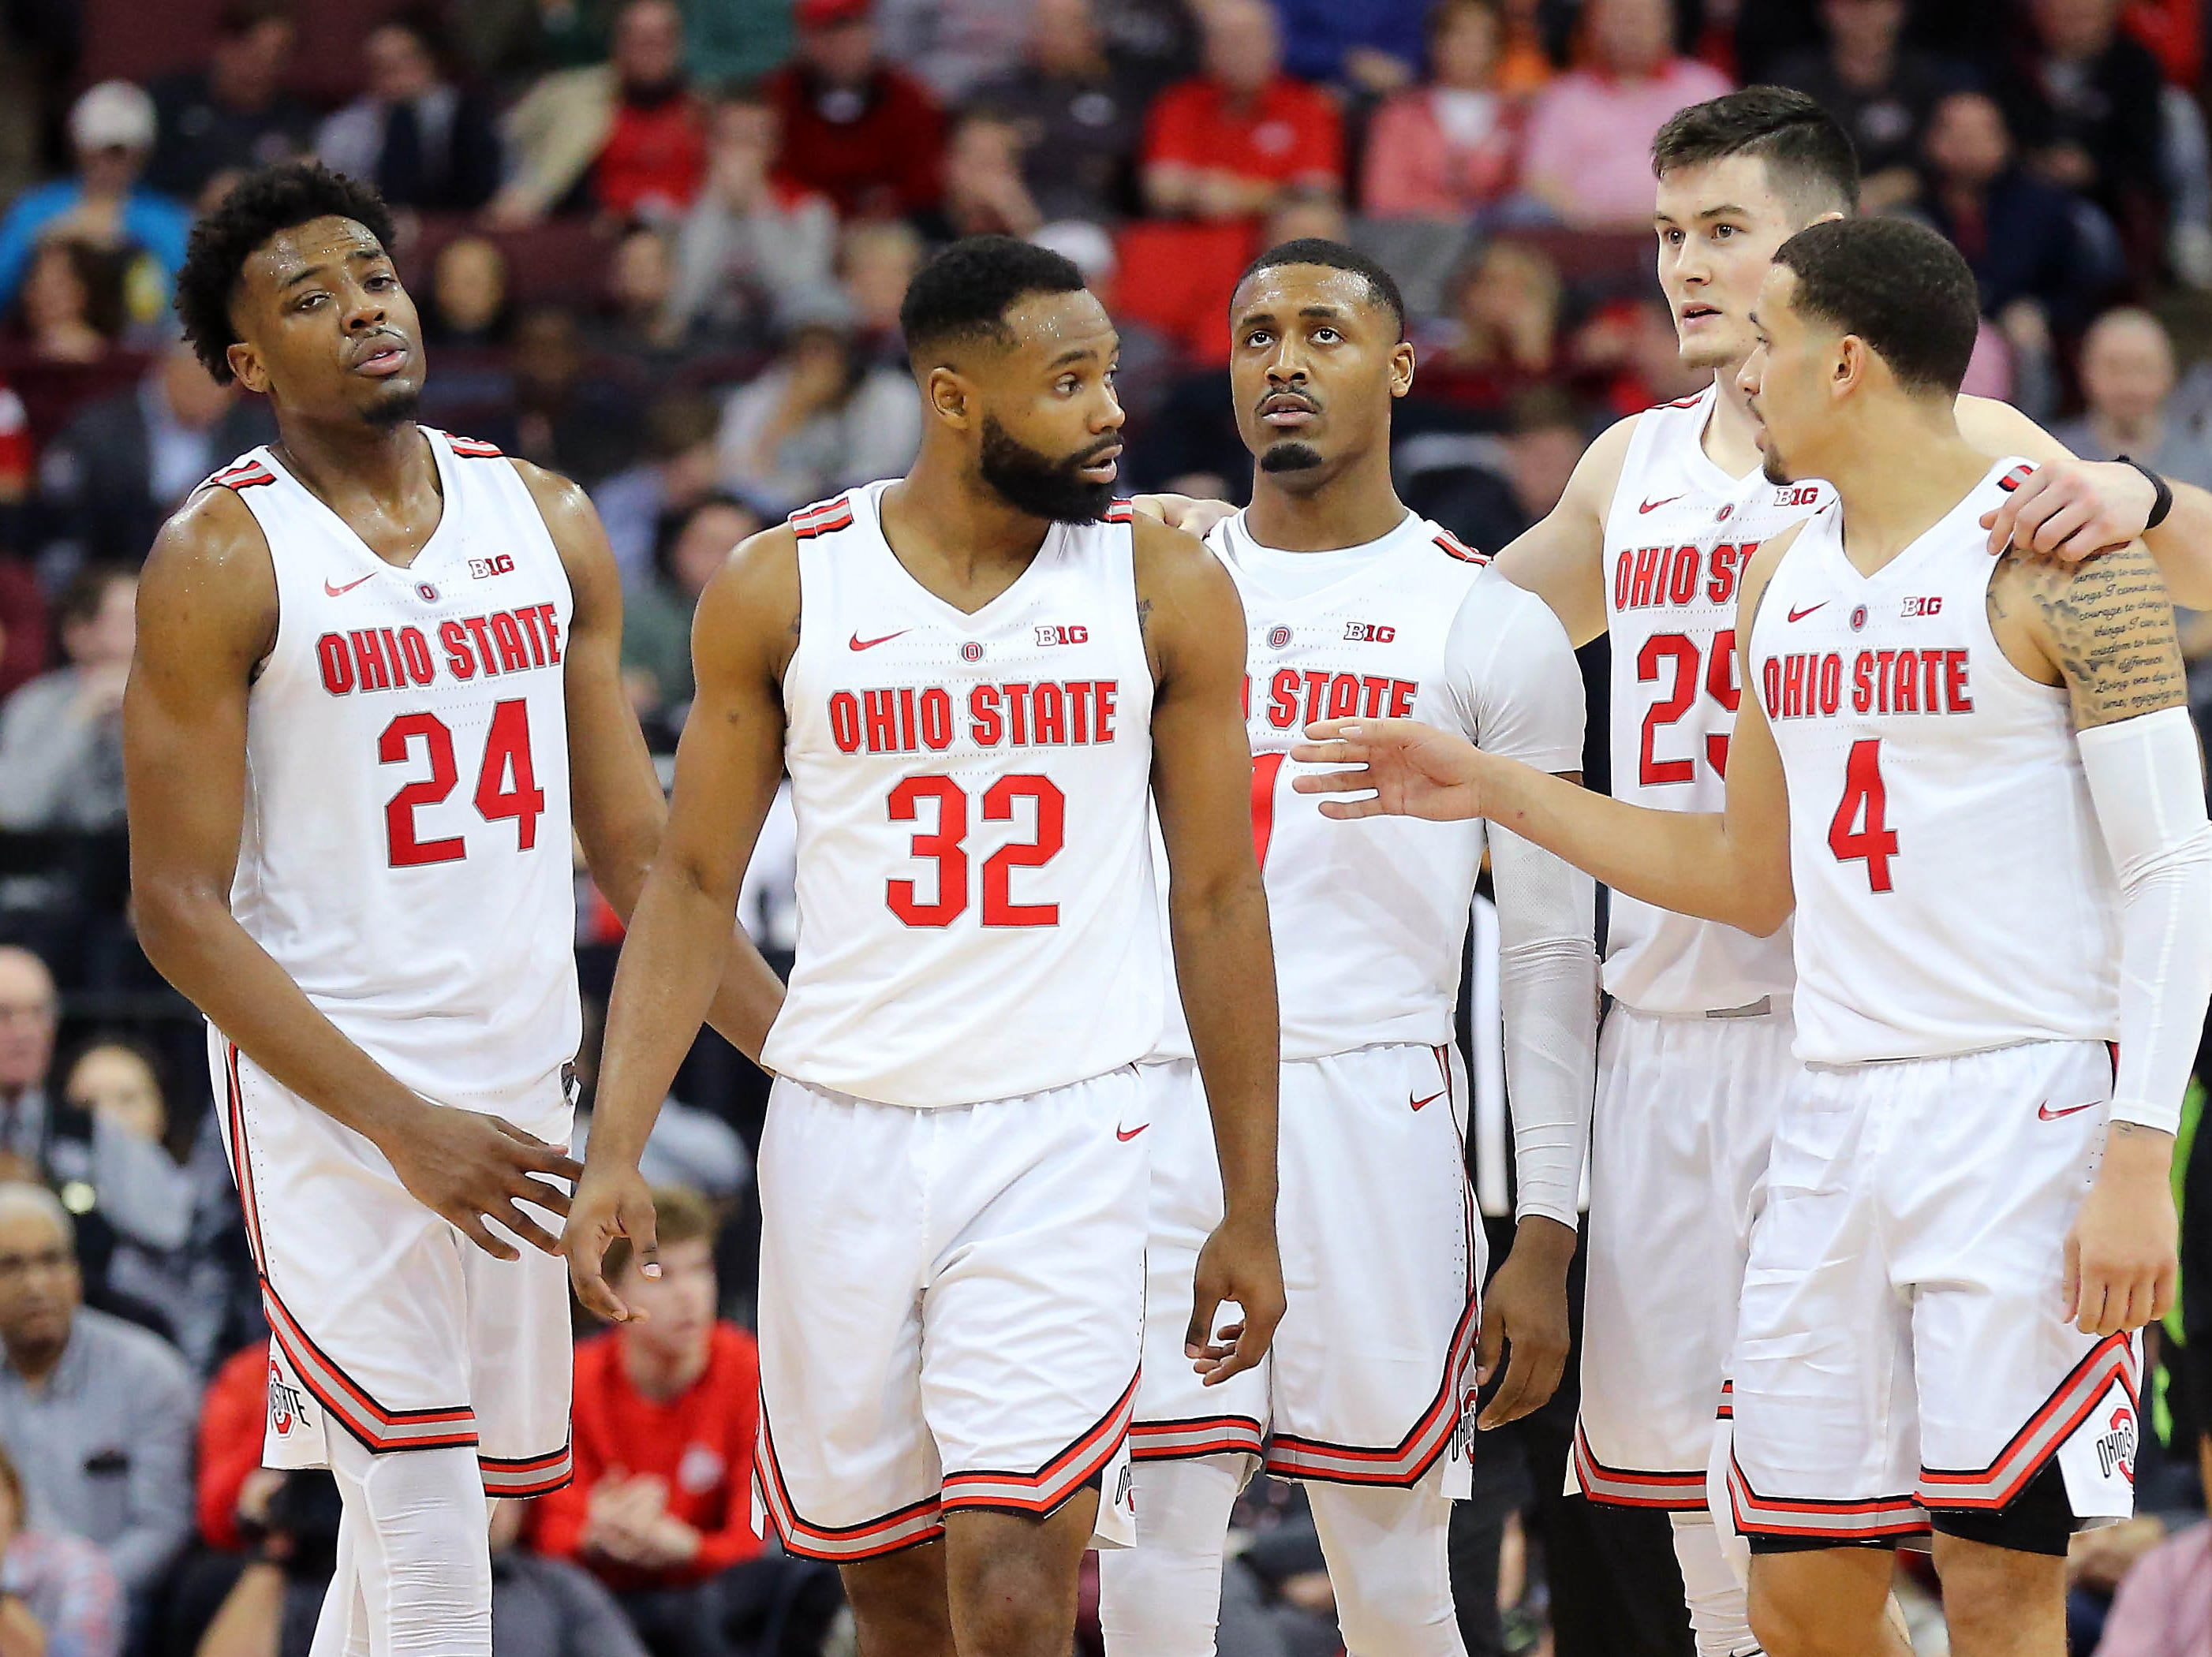 Jan 5, 2019; Columbus, OH, USA; The Ohio State Buckeyes gather as the game begins to slip away during the second half against the Michigan State Spartans at Value City Arena. Mandatory Credit: Joe Maiorana-USA TODAY Sports